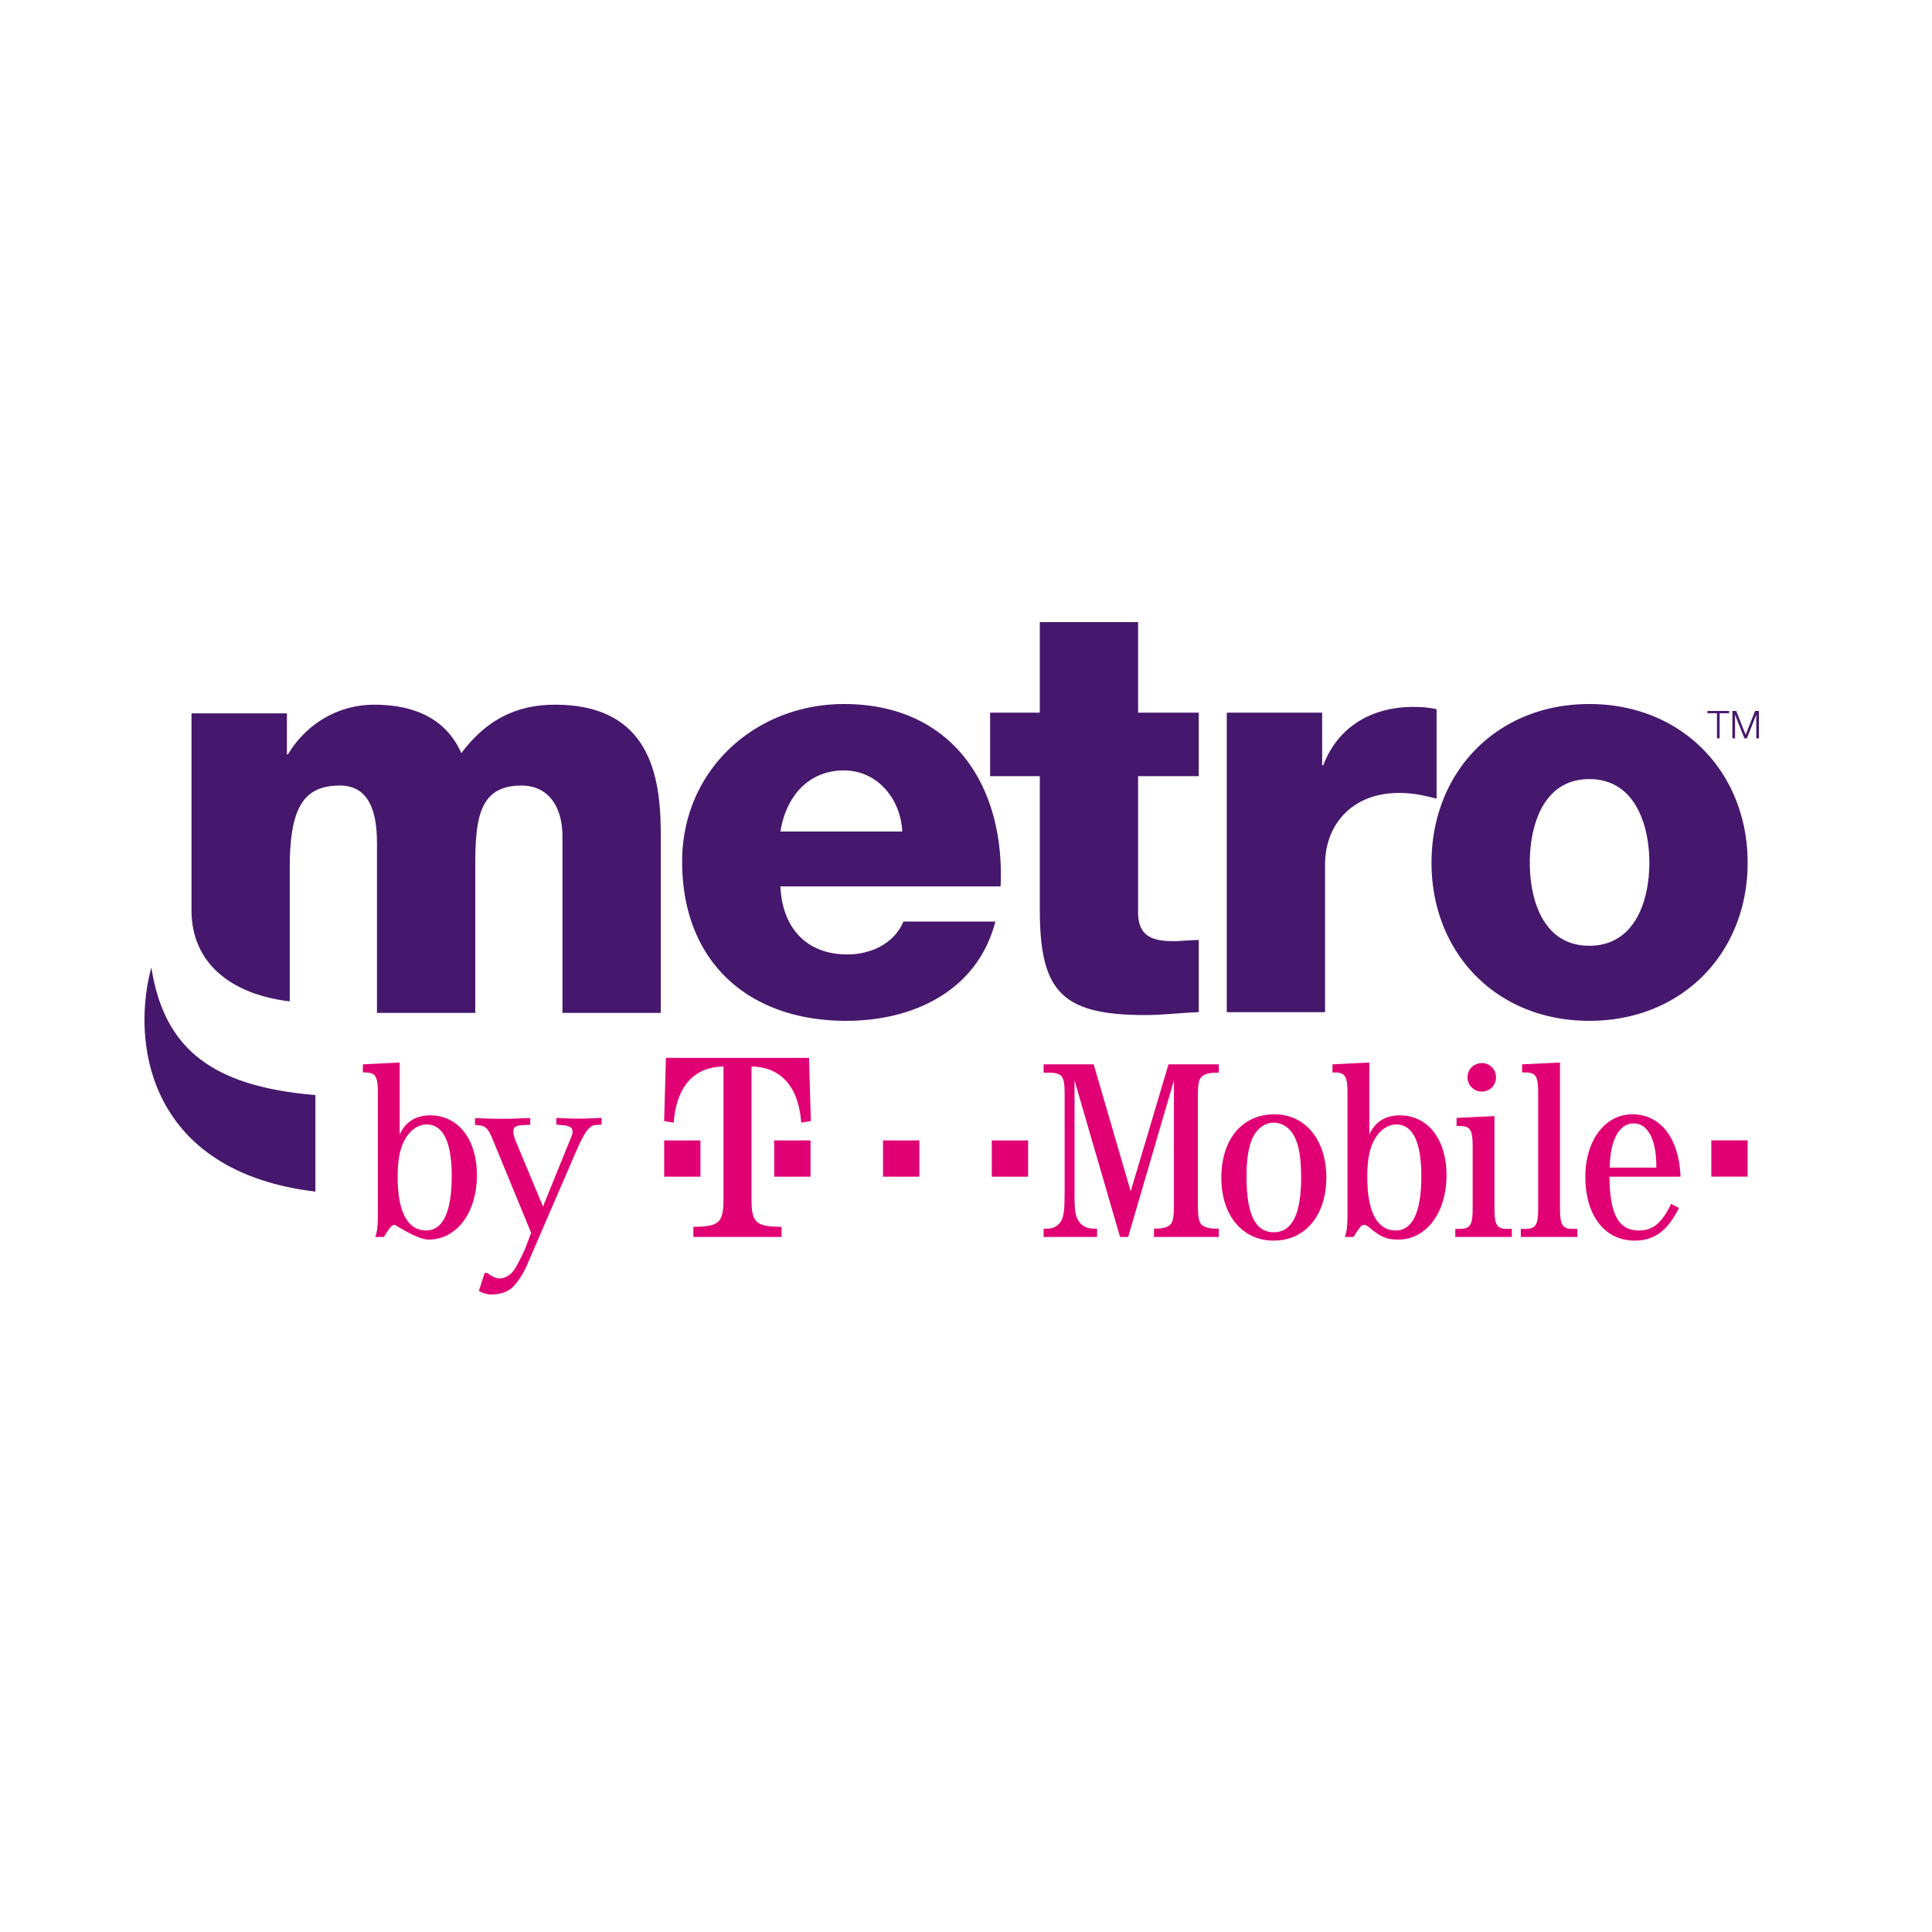 Metro by T-Mobile image 1